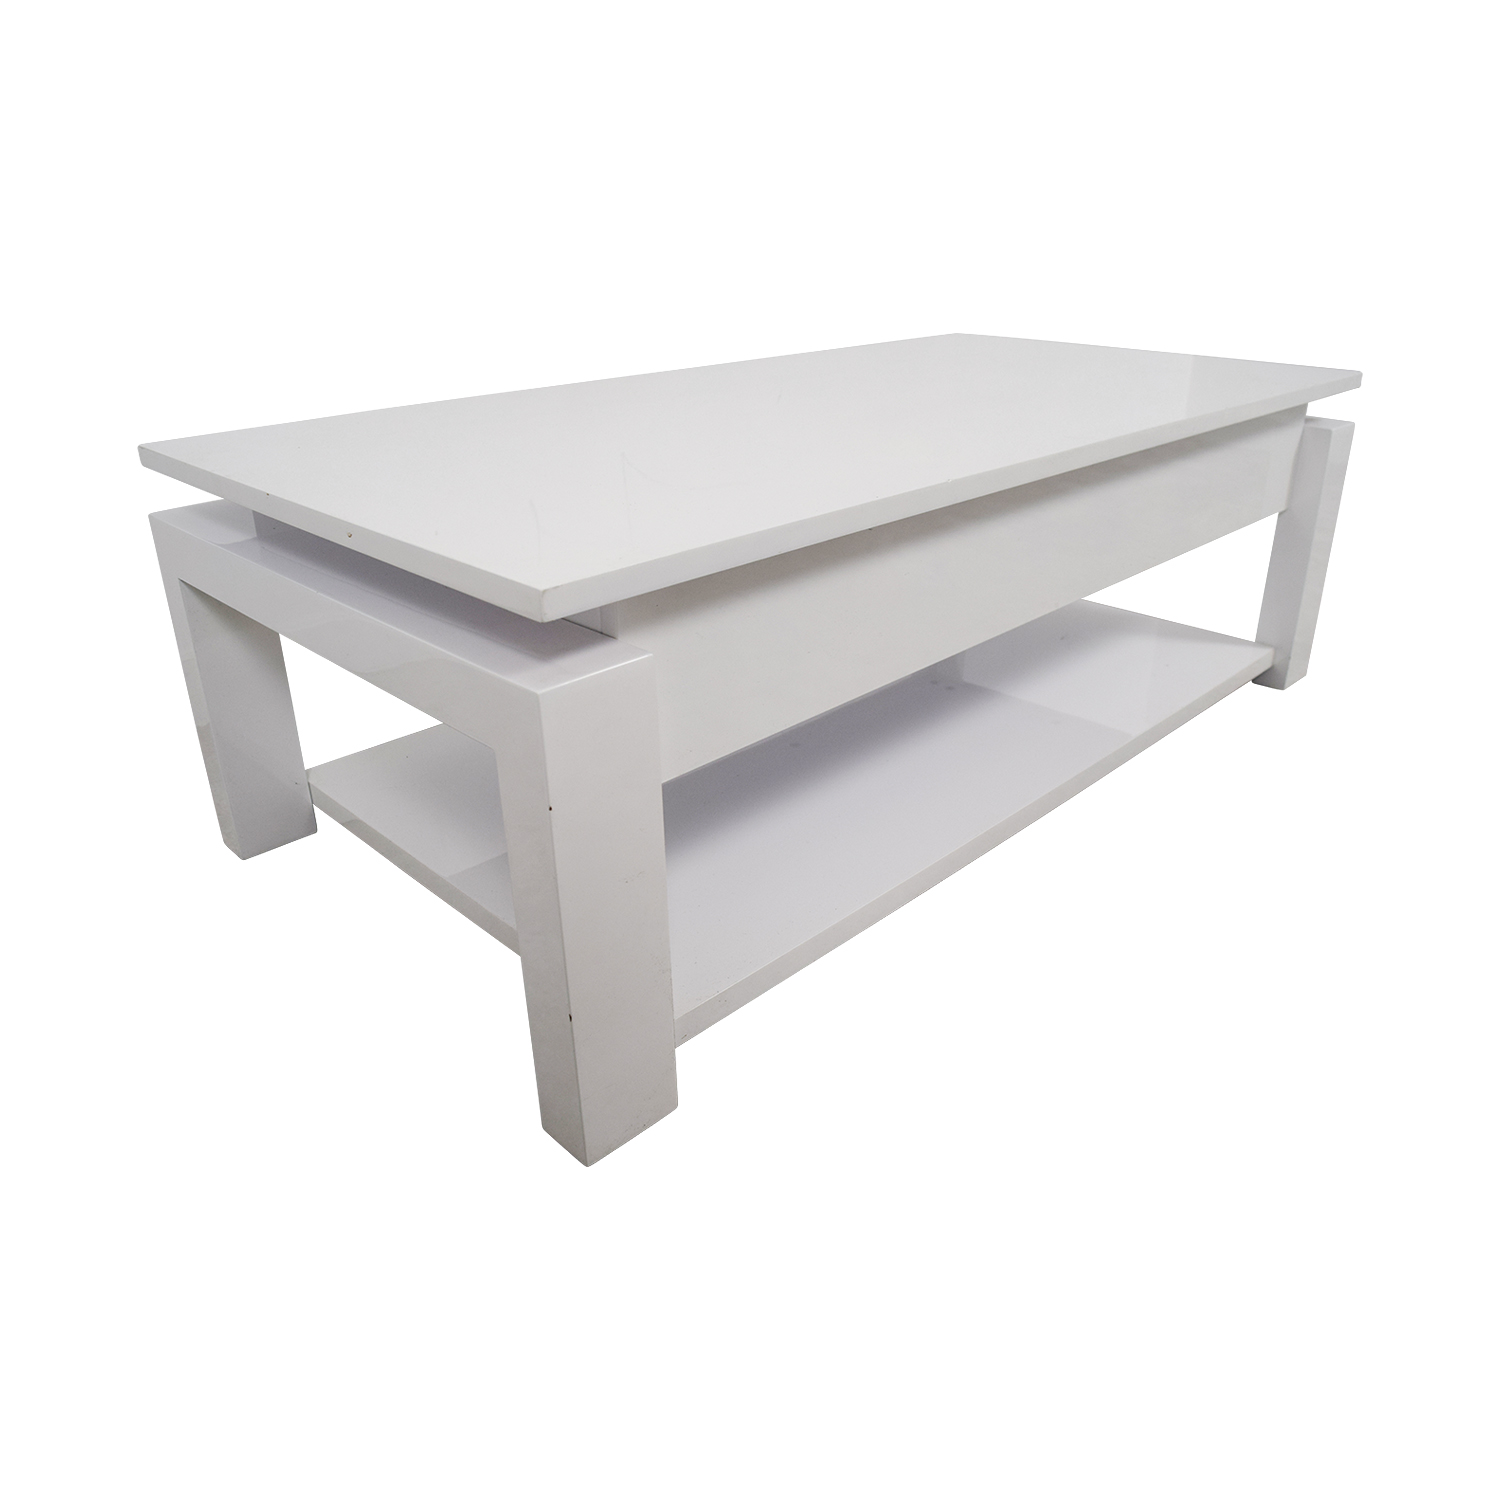 OFF White Lift Top Coffee Table Tables